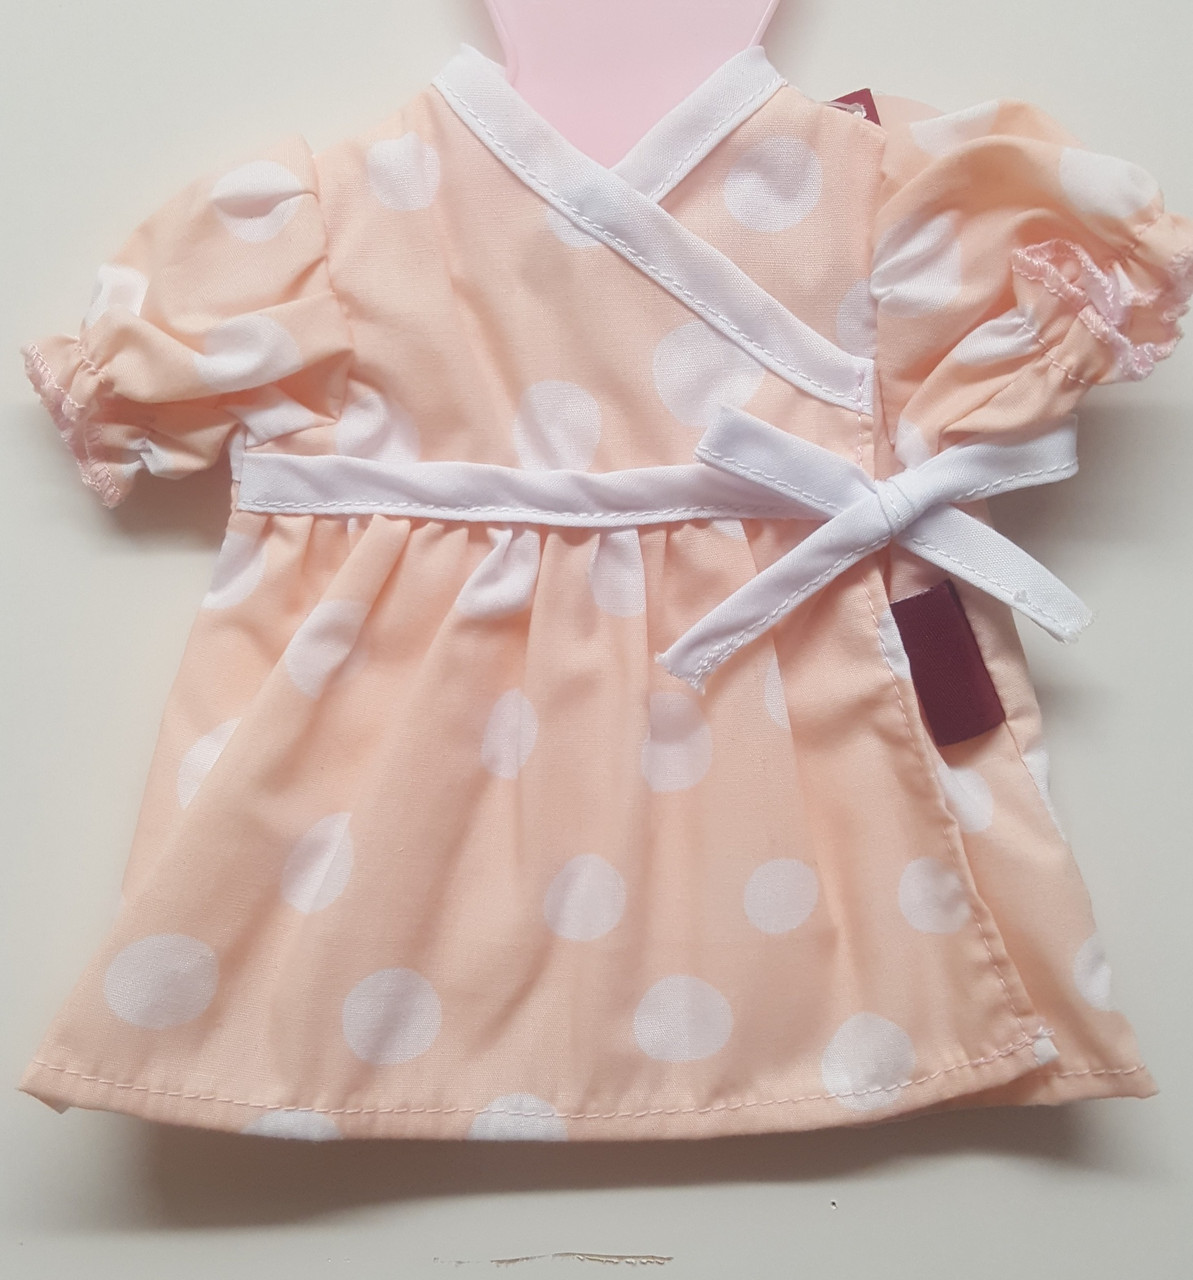 Gotz Coral Pink White Pockadot Dress 30-33cm at Baby Barn Discounts Gotz very sweet coral pink dress has white polkadots and an emperor line bow.